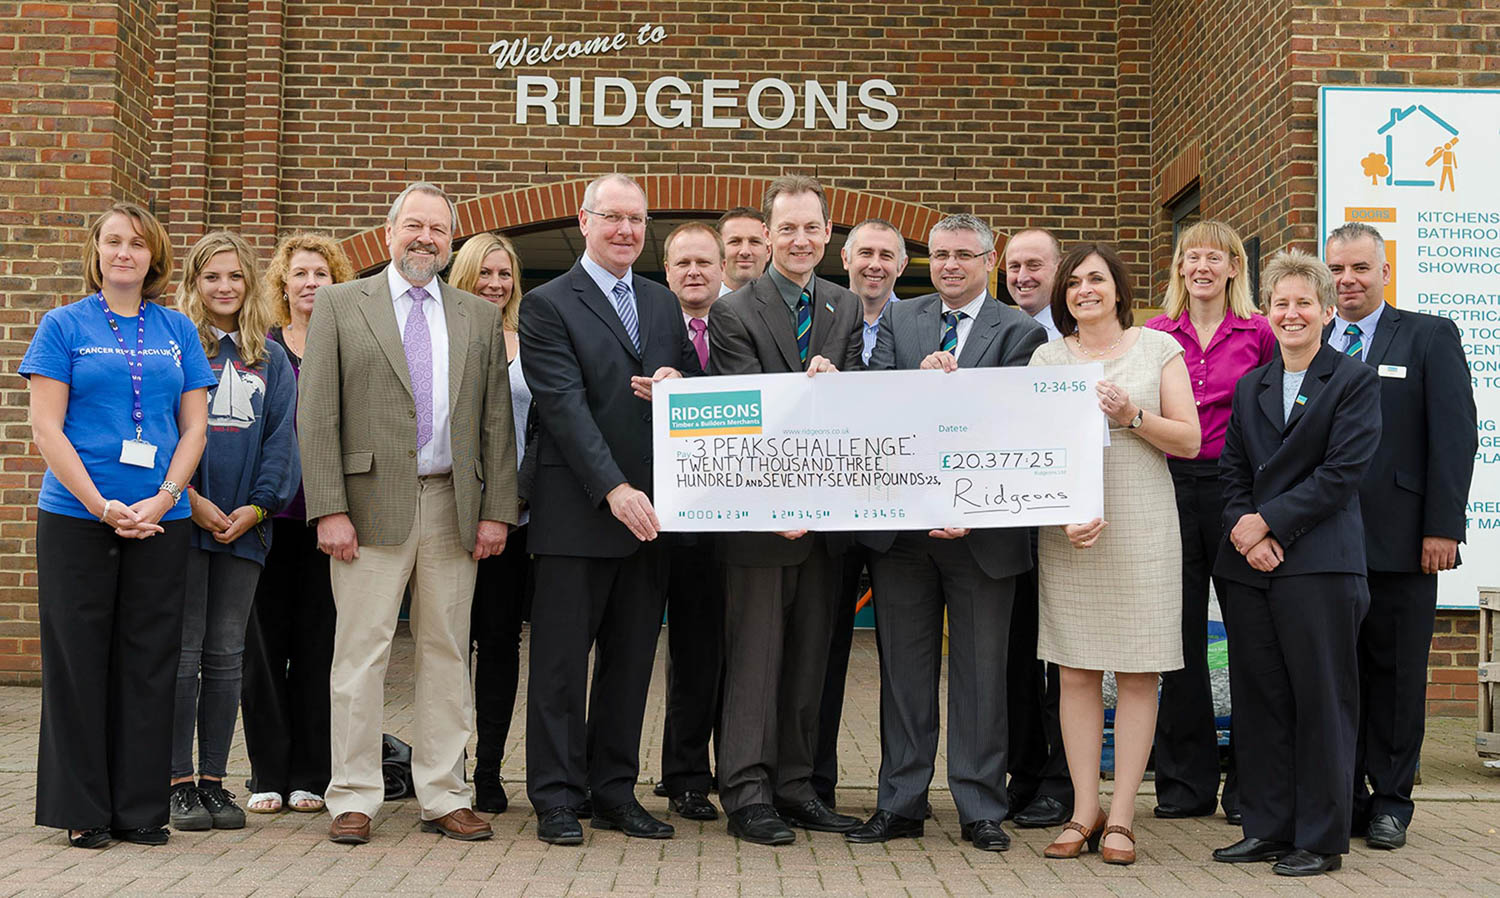 Ridgeons in Cambridge charity donation